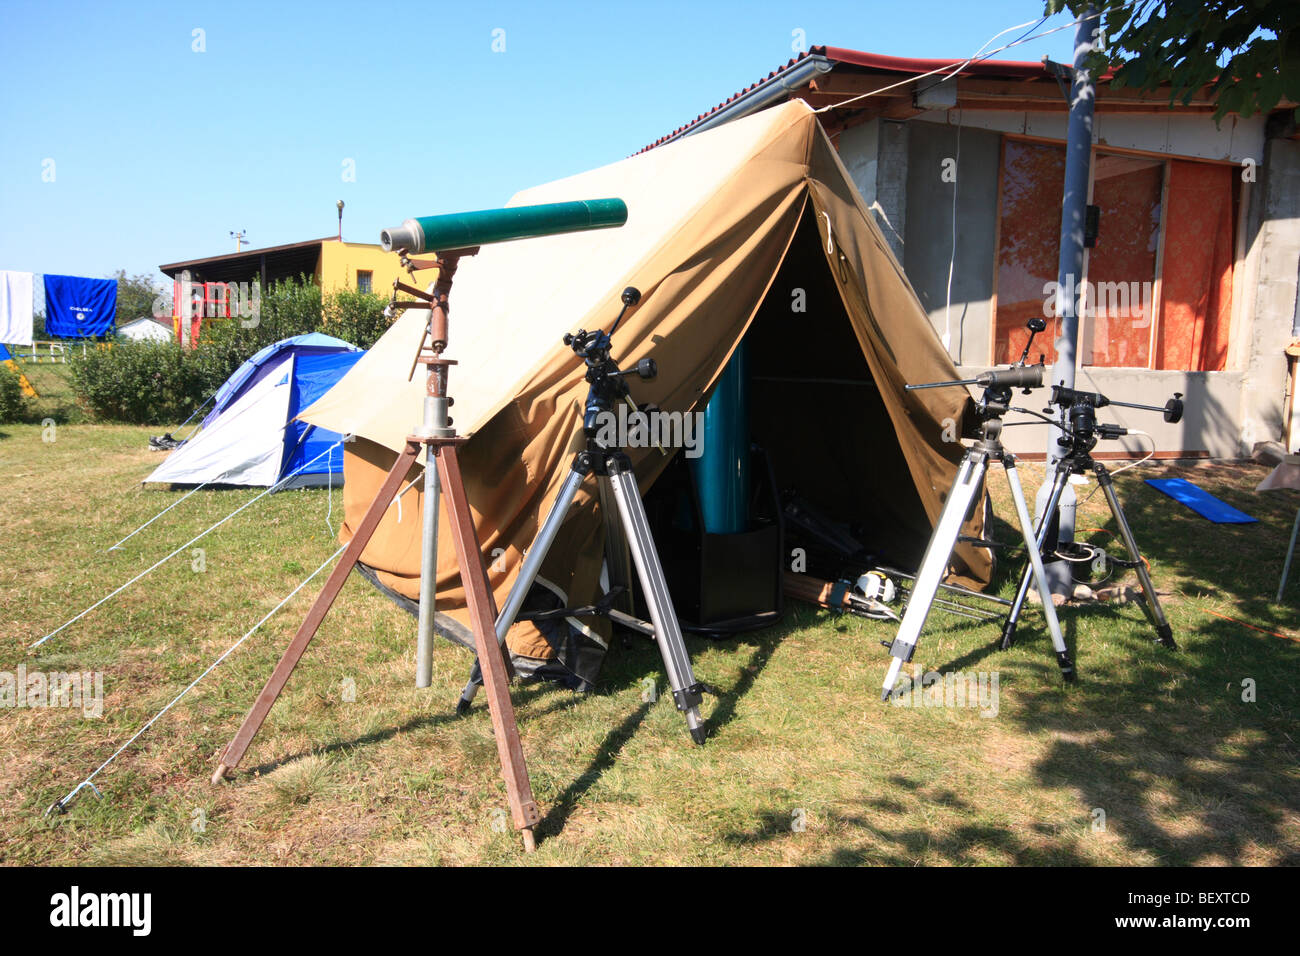 Astrocamp with telescopes and instruments in southern Slovakia - Stock Image